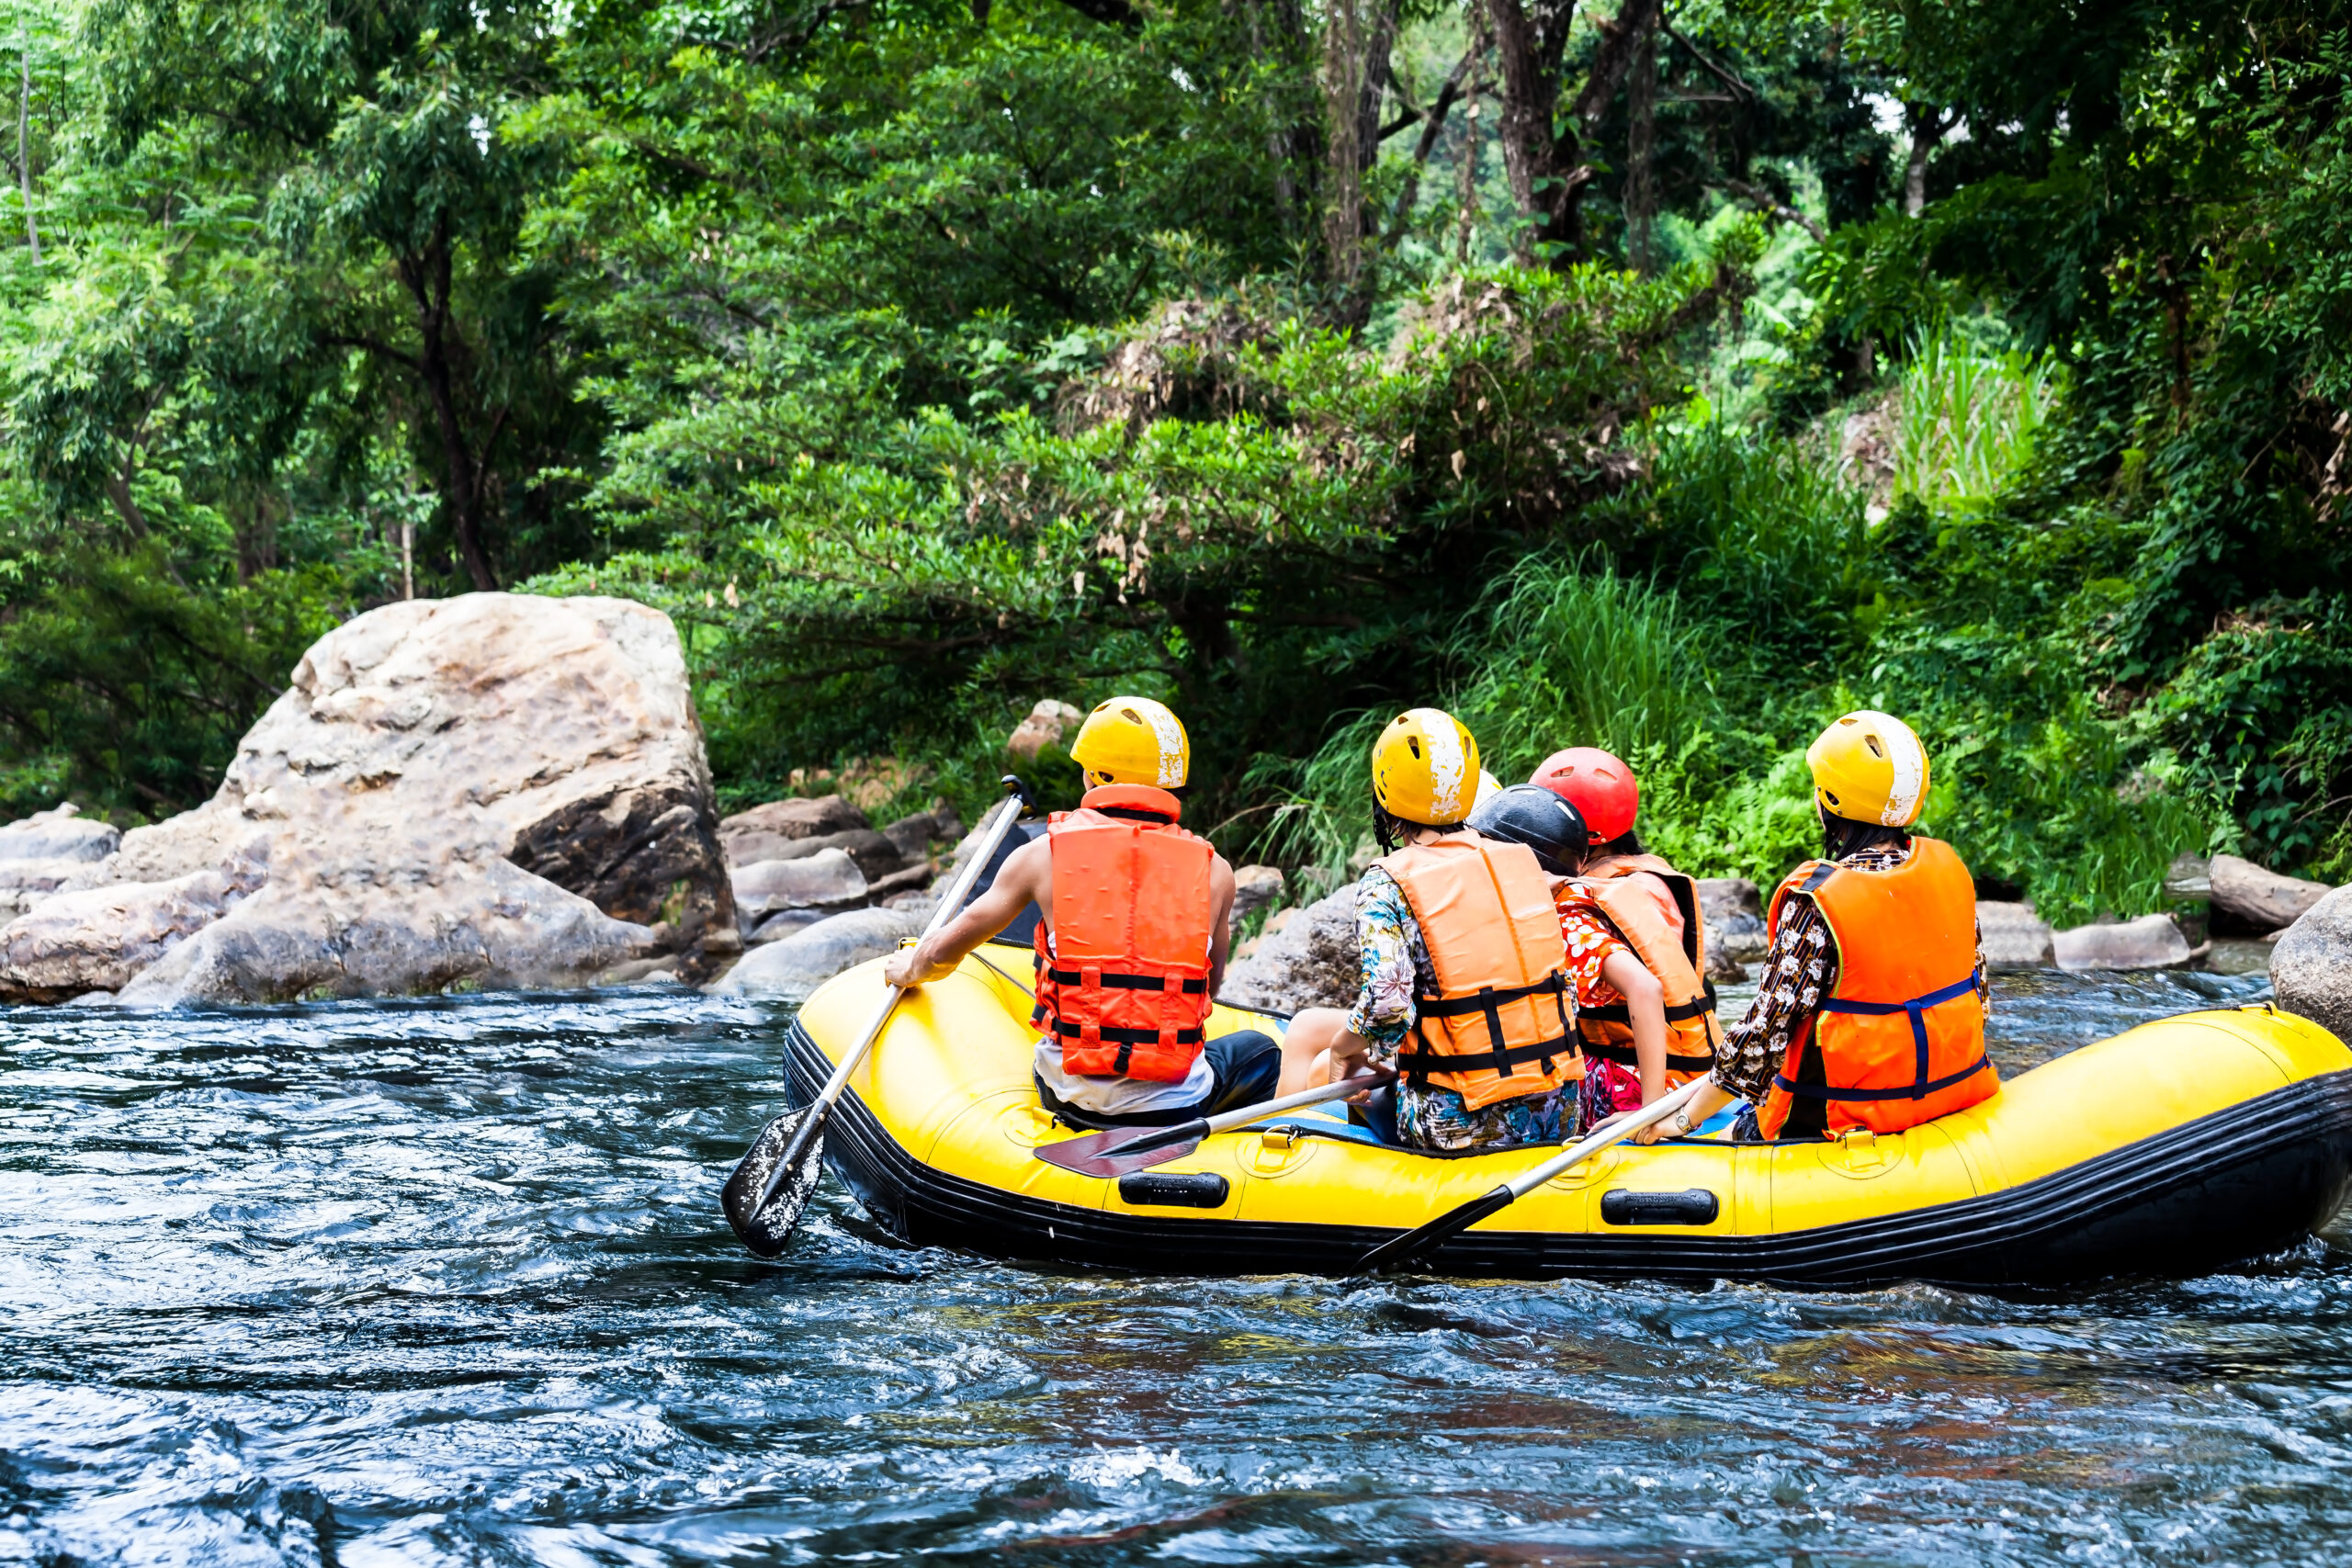 Photo of people white water rafting in a yellow rafting boat.